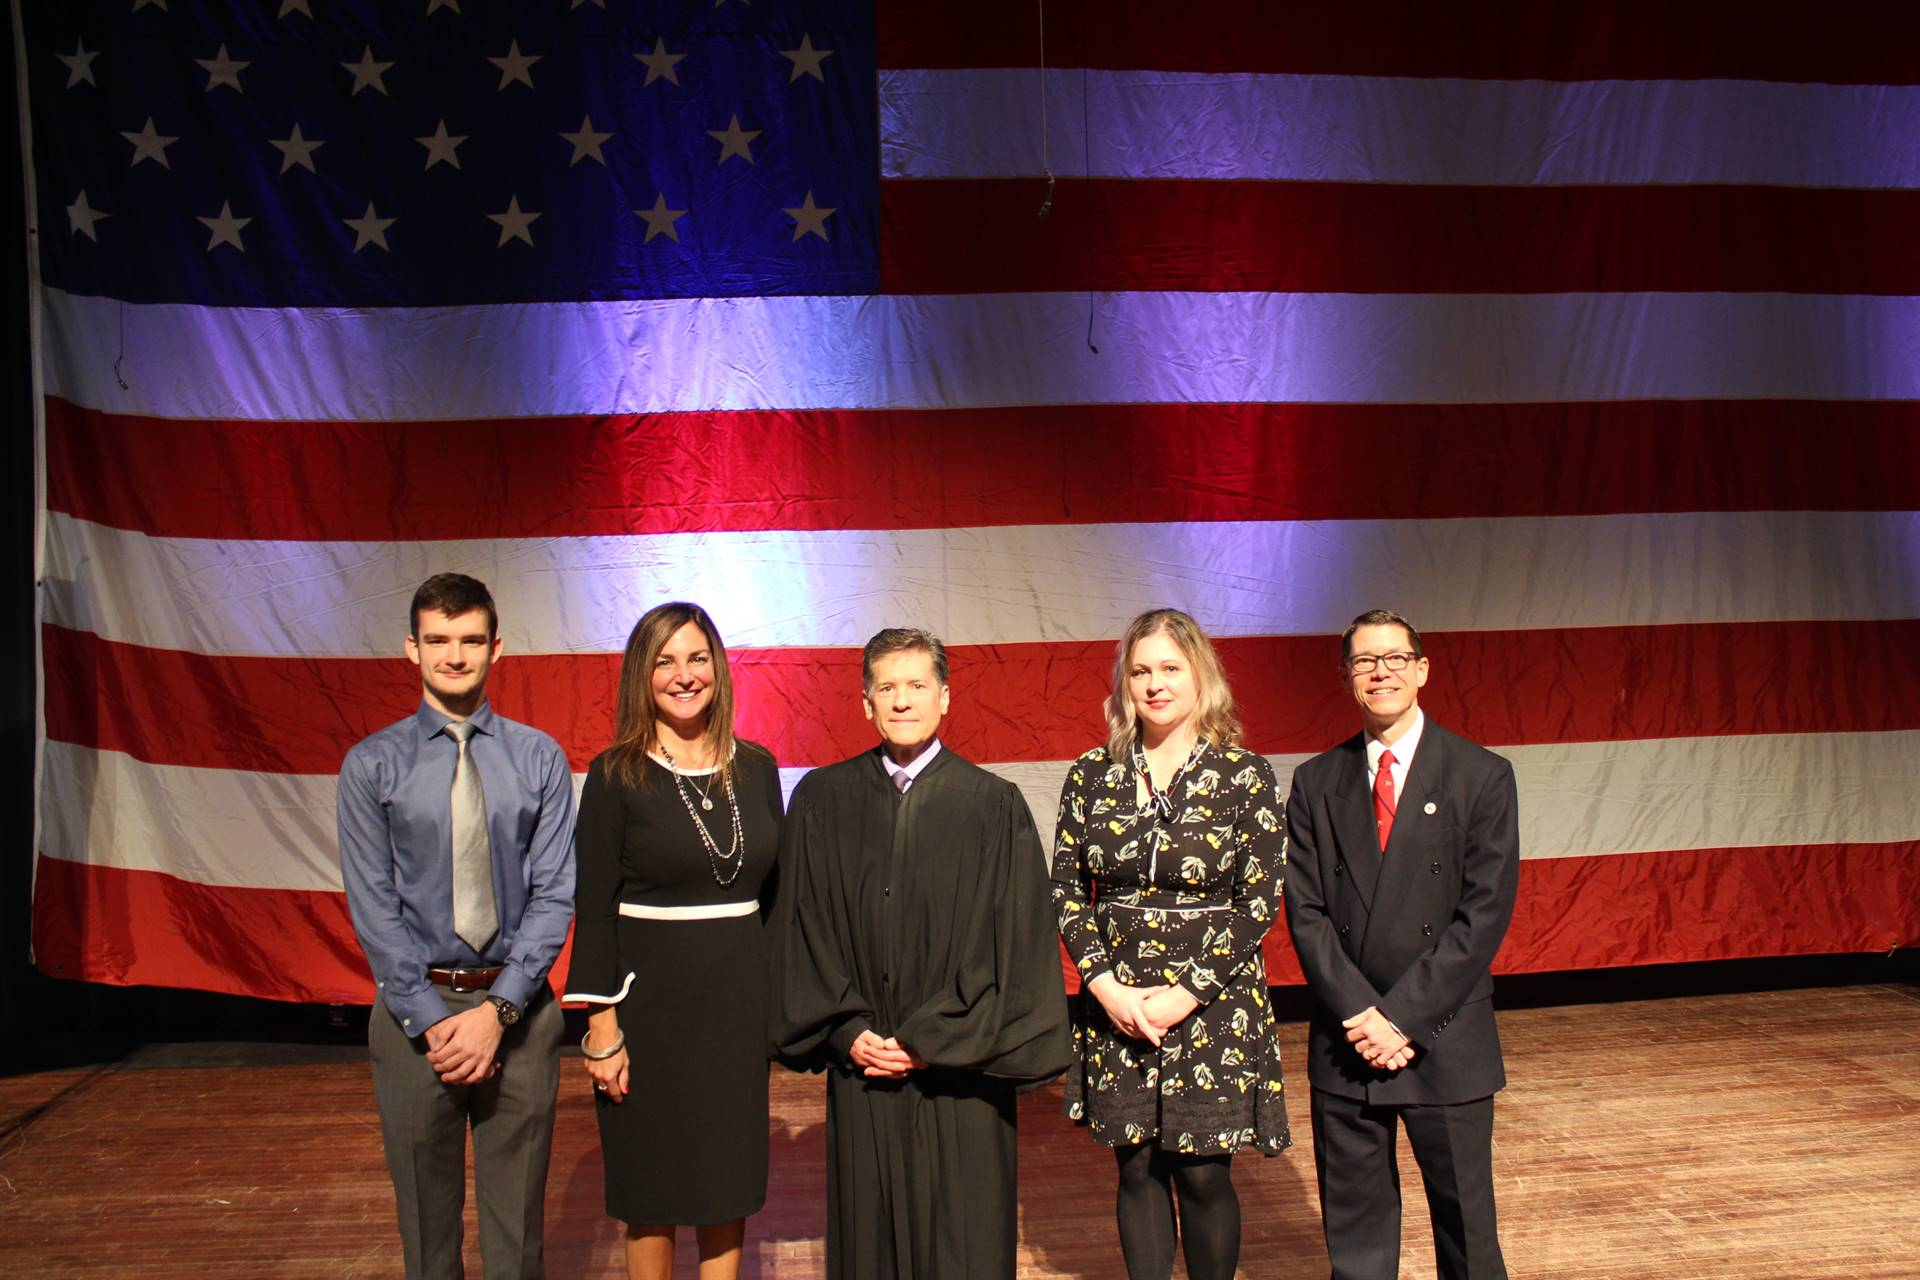 Naturalization ceremony speakers for November 22nd